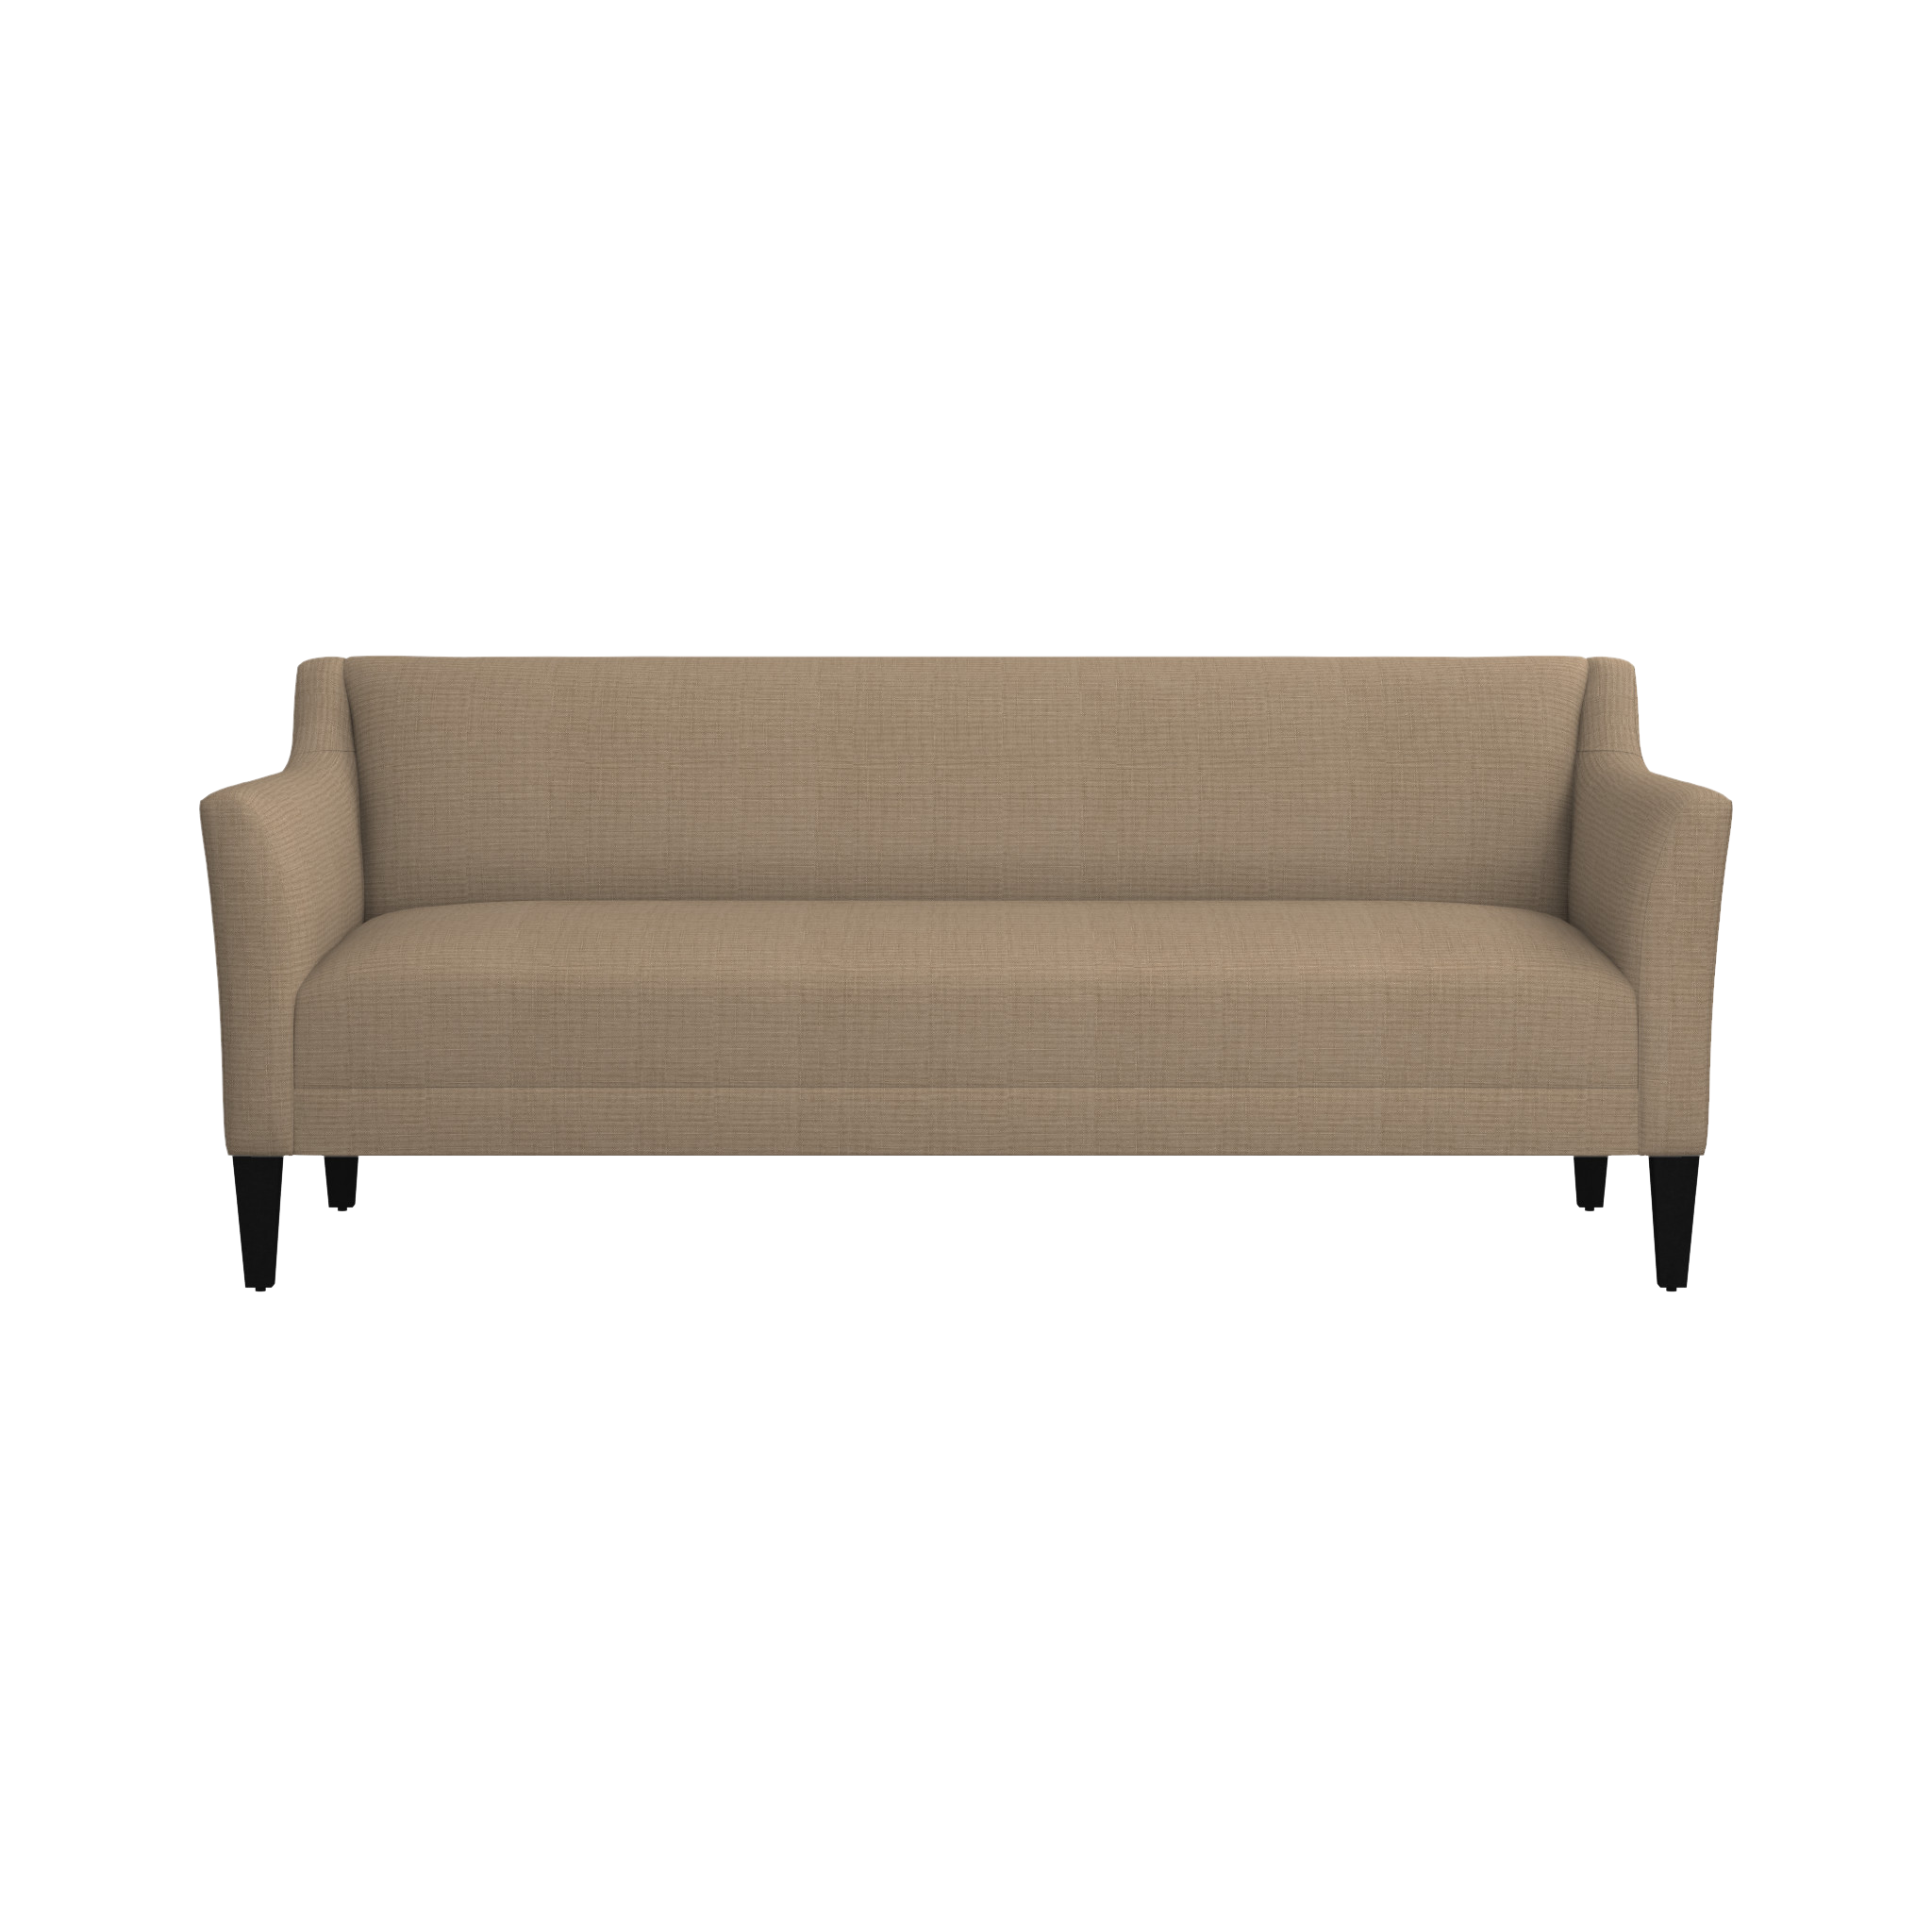 Shop margot 80 sofa graceful curvy margot makes an impressive statement at an equally impressive value this sofas upright profile features high track